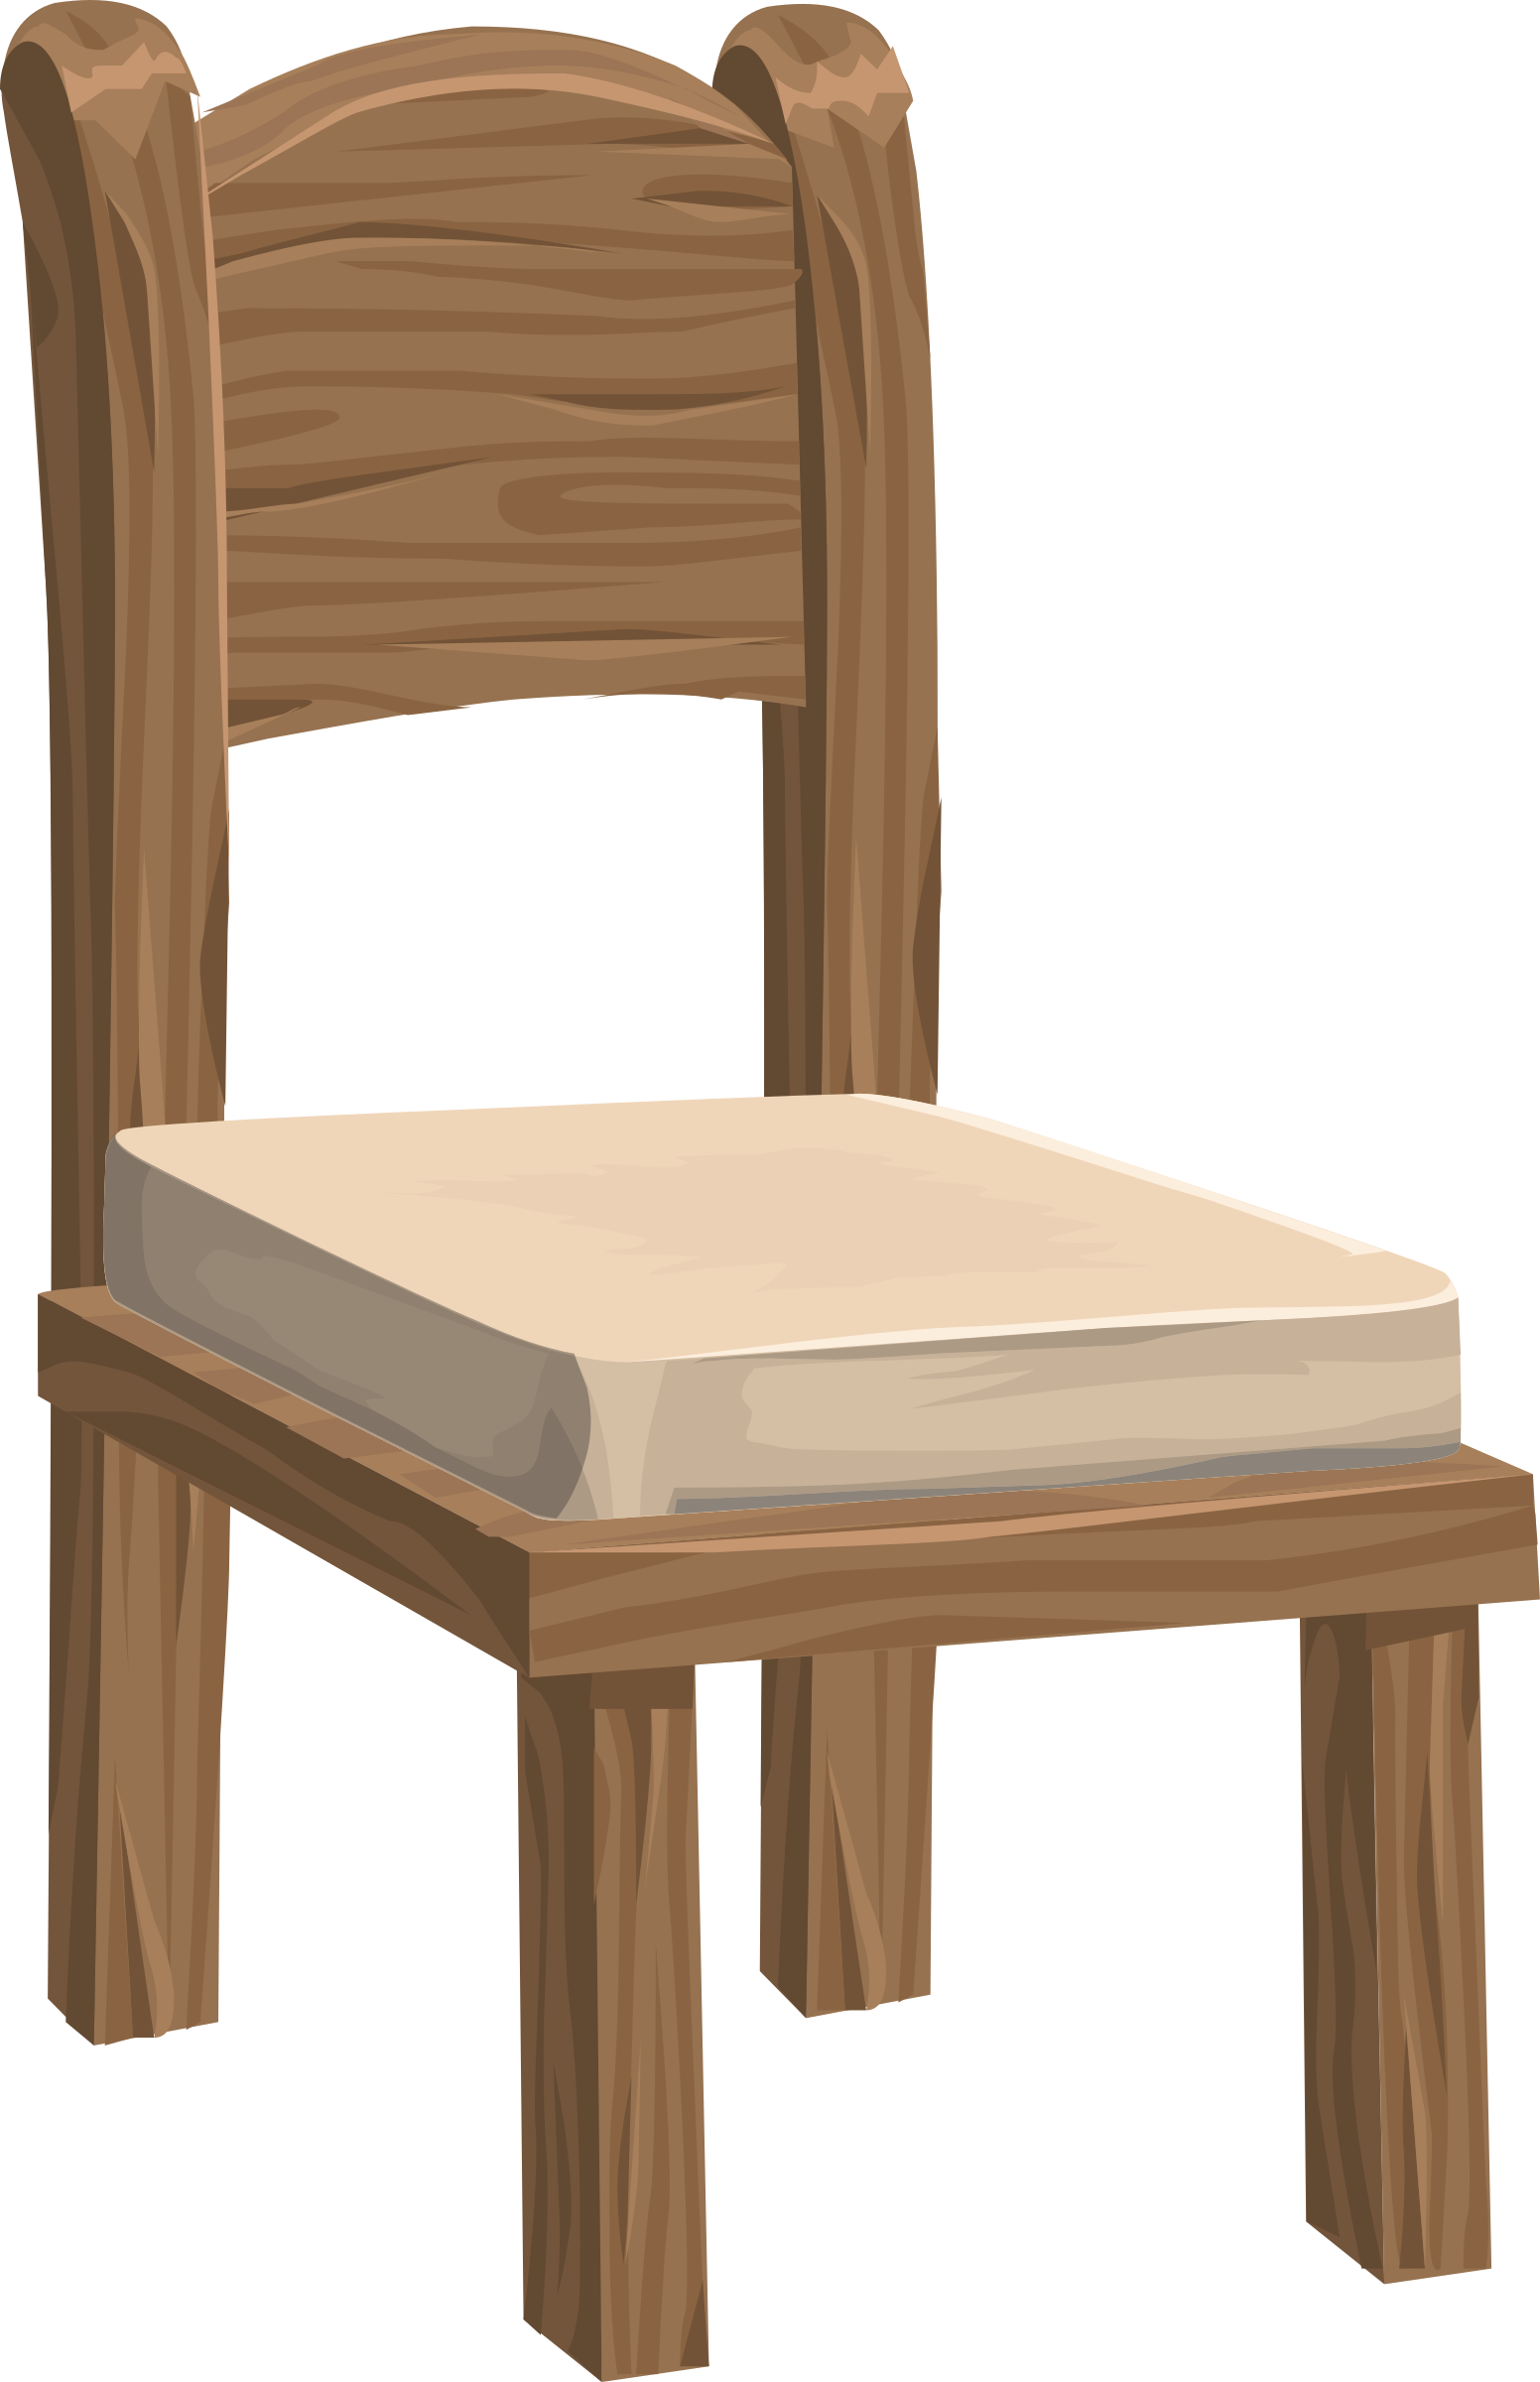 Chair clipart small chair, Chair small chair Transparent FREE for download  on WebStockReview 2020